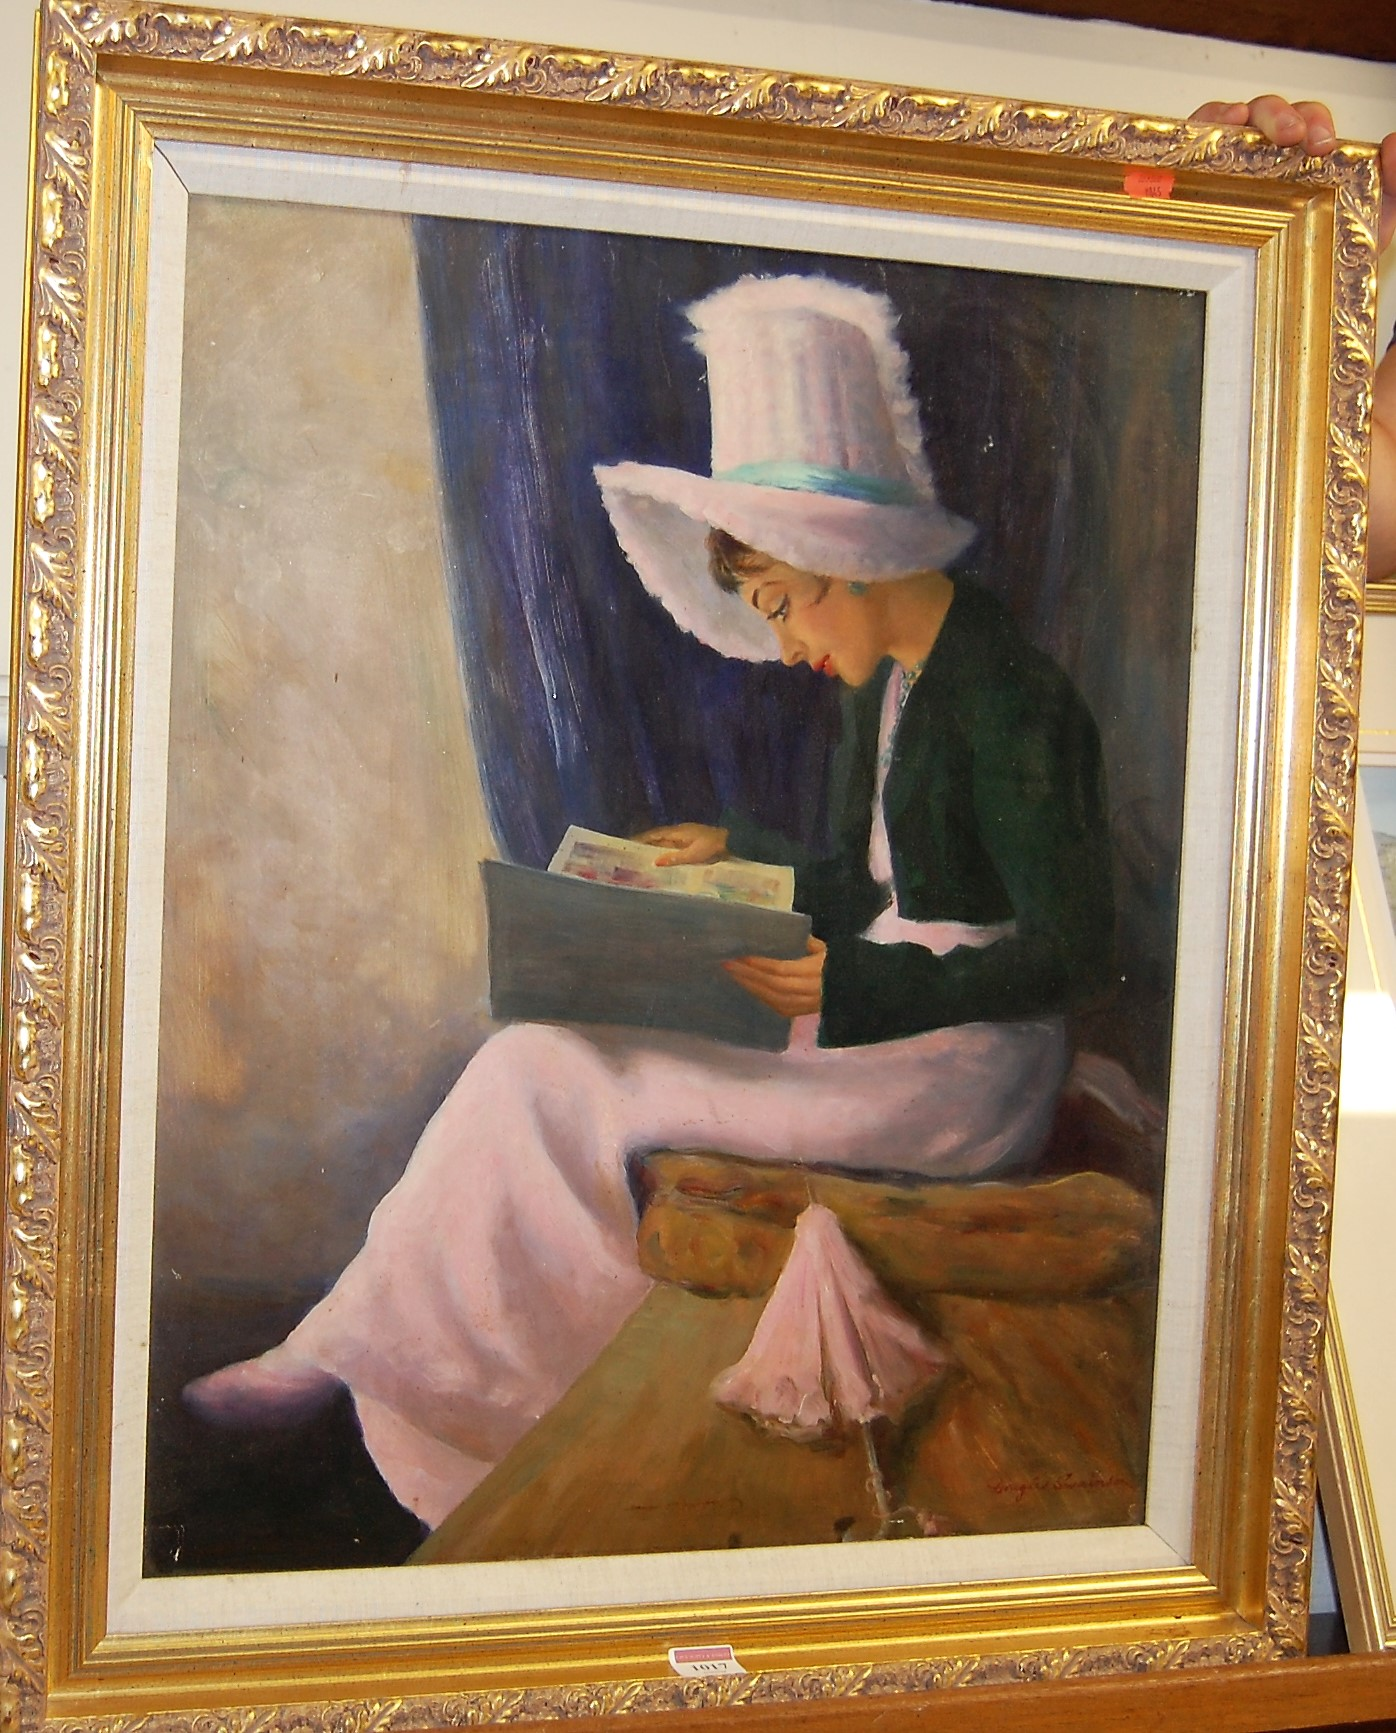 Lot 1017 - Douglas Swainson - The Picture book, oil on board, signed lower right, 59 x 49cm